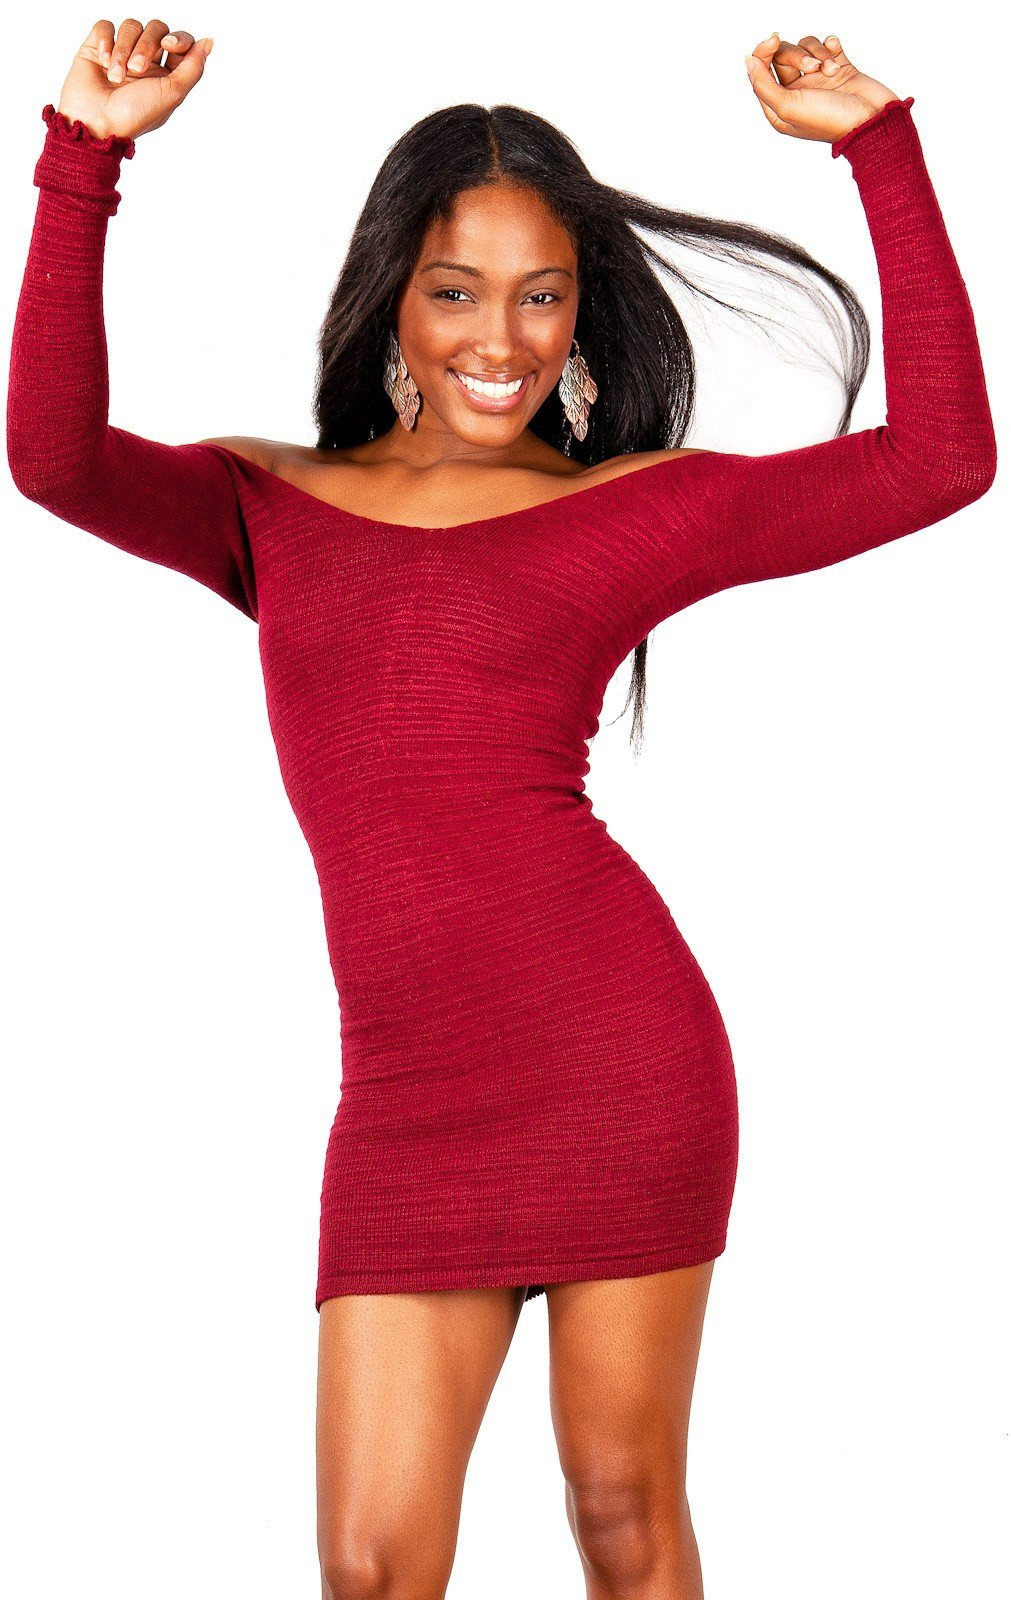 Off The Shoulder Mini Dress / Sexy Sweater Dress @KDdanceNewYork #MadeInUSA - 7